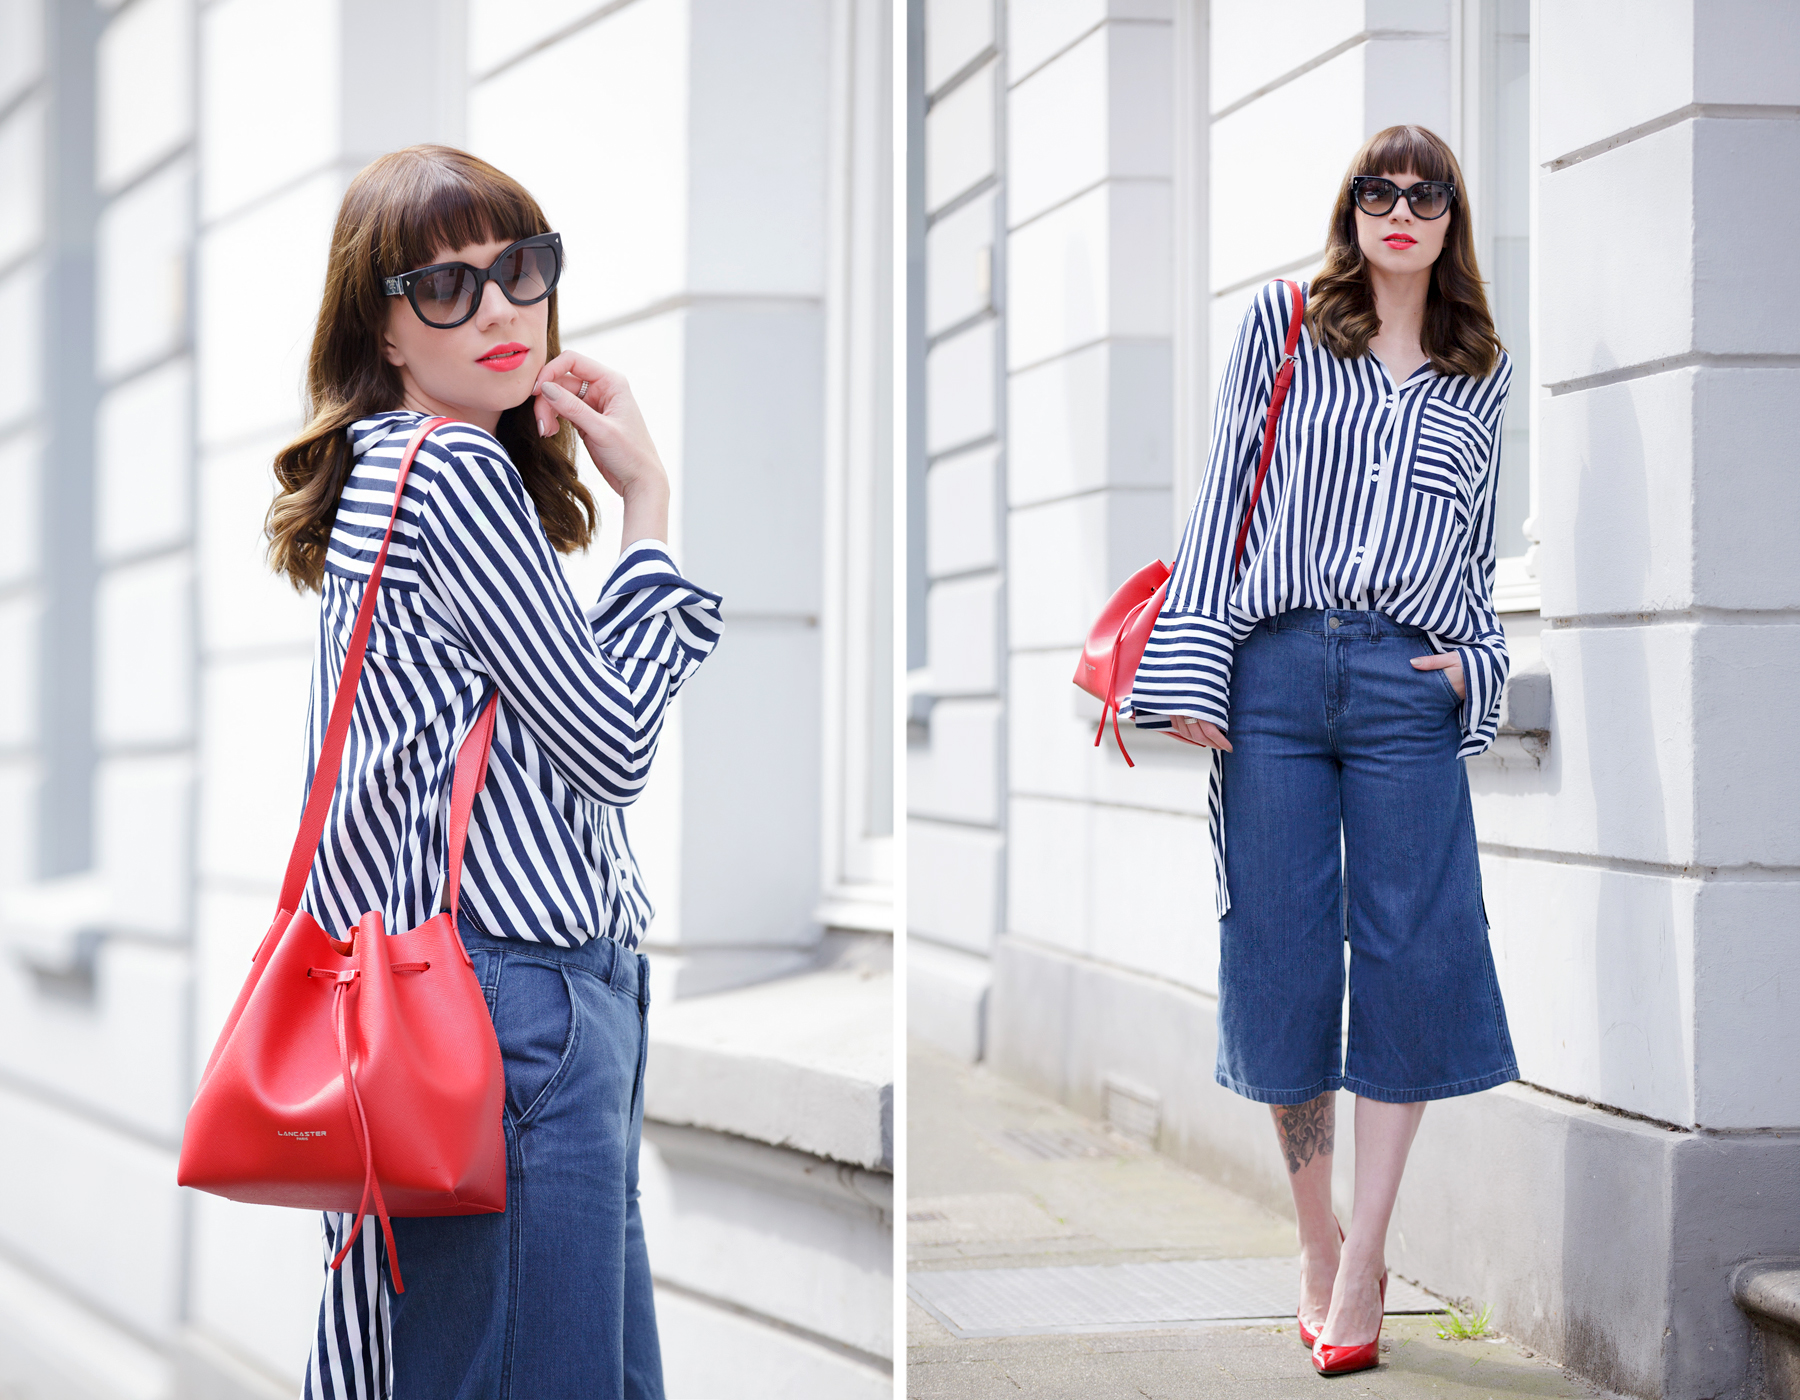 francaise chic striped outfit ootd look of the day lookbook love pretty parisienne outfit denim culottes vero moda edited striped shirt lancaster paris bucket bag prada mister spex sunglasses pumps cats & digs fashionblog ricarda schernus modeblog 7